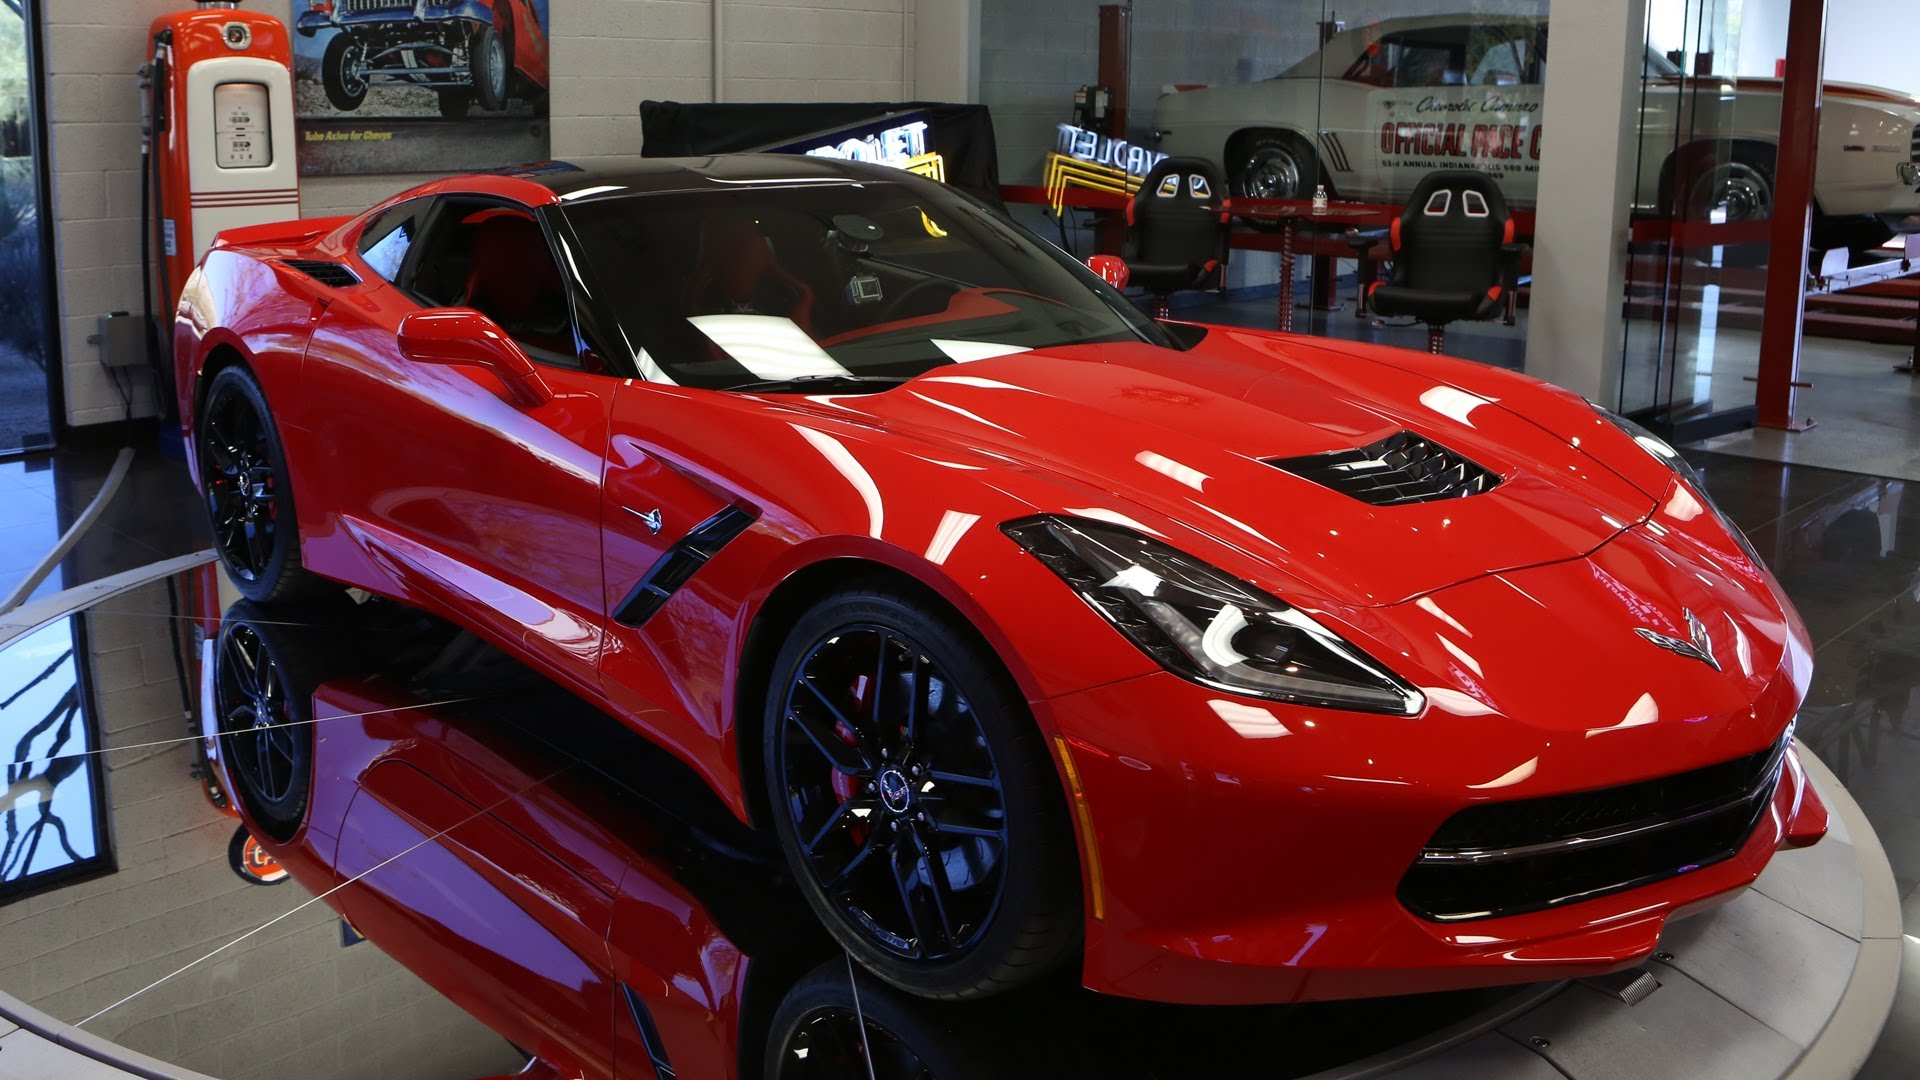 First Look: 2014 Corvette Stingray – Jay Leno's Garage